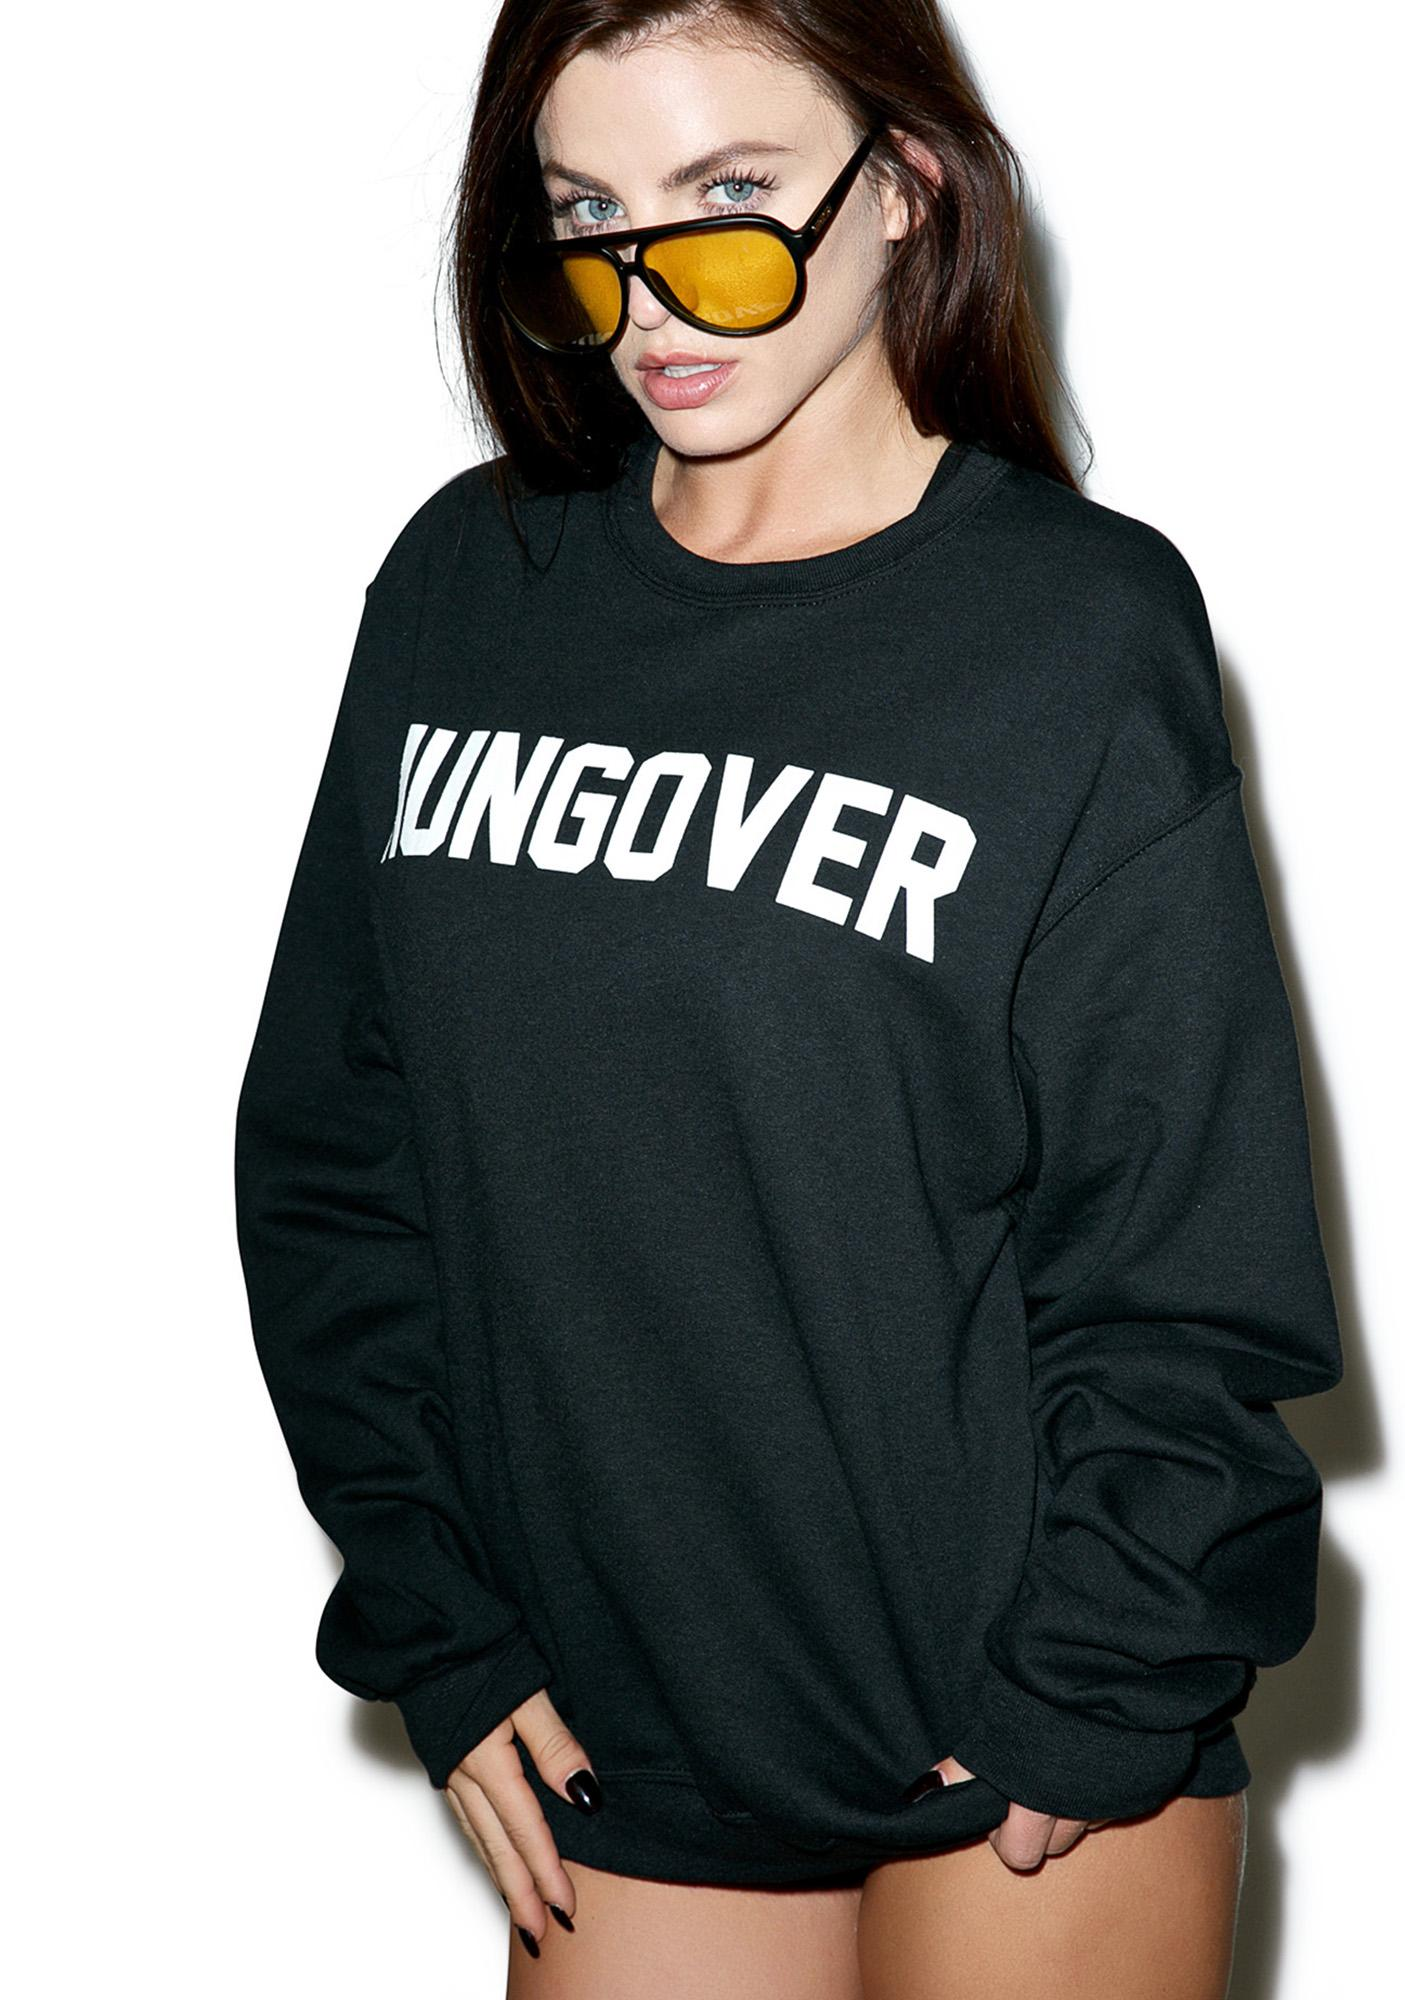 Private Party Hungover Sweatshirt